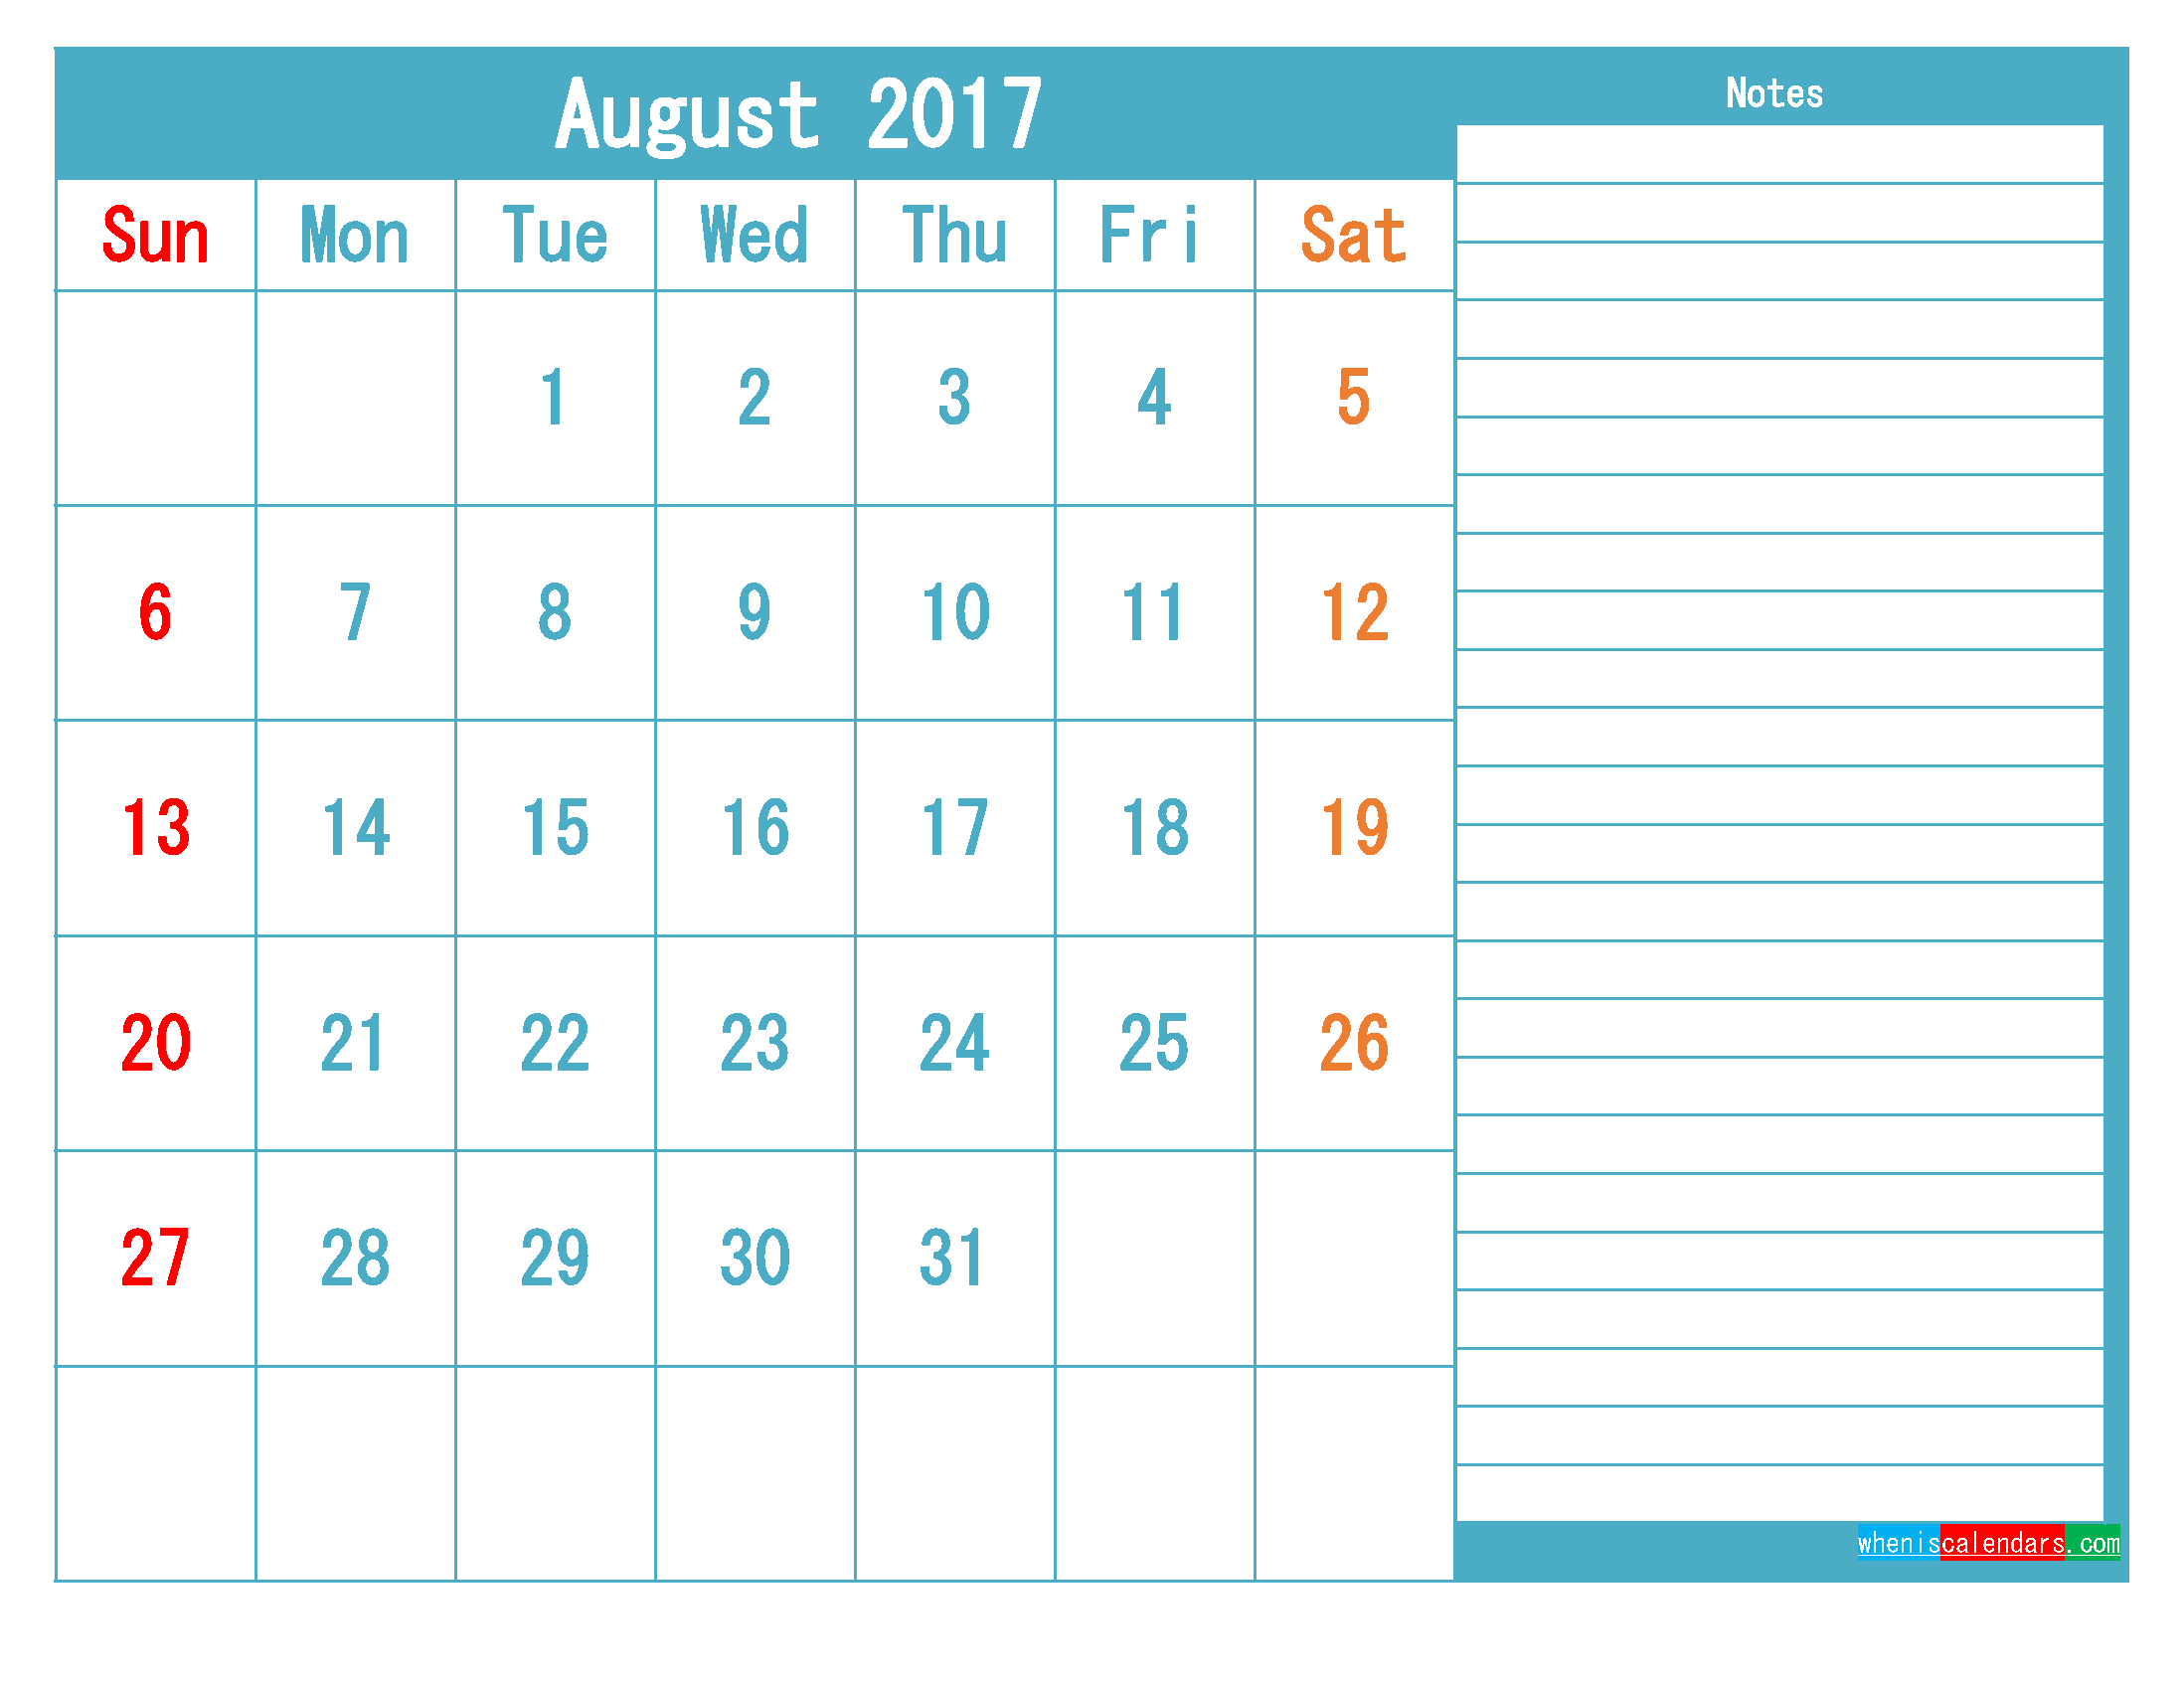 August 2017 Printable Calendar Templates PDF and Image